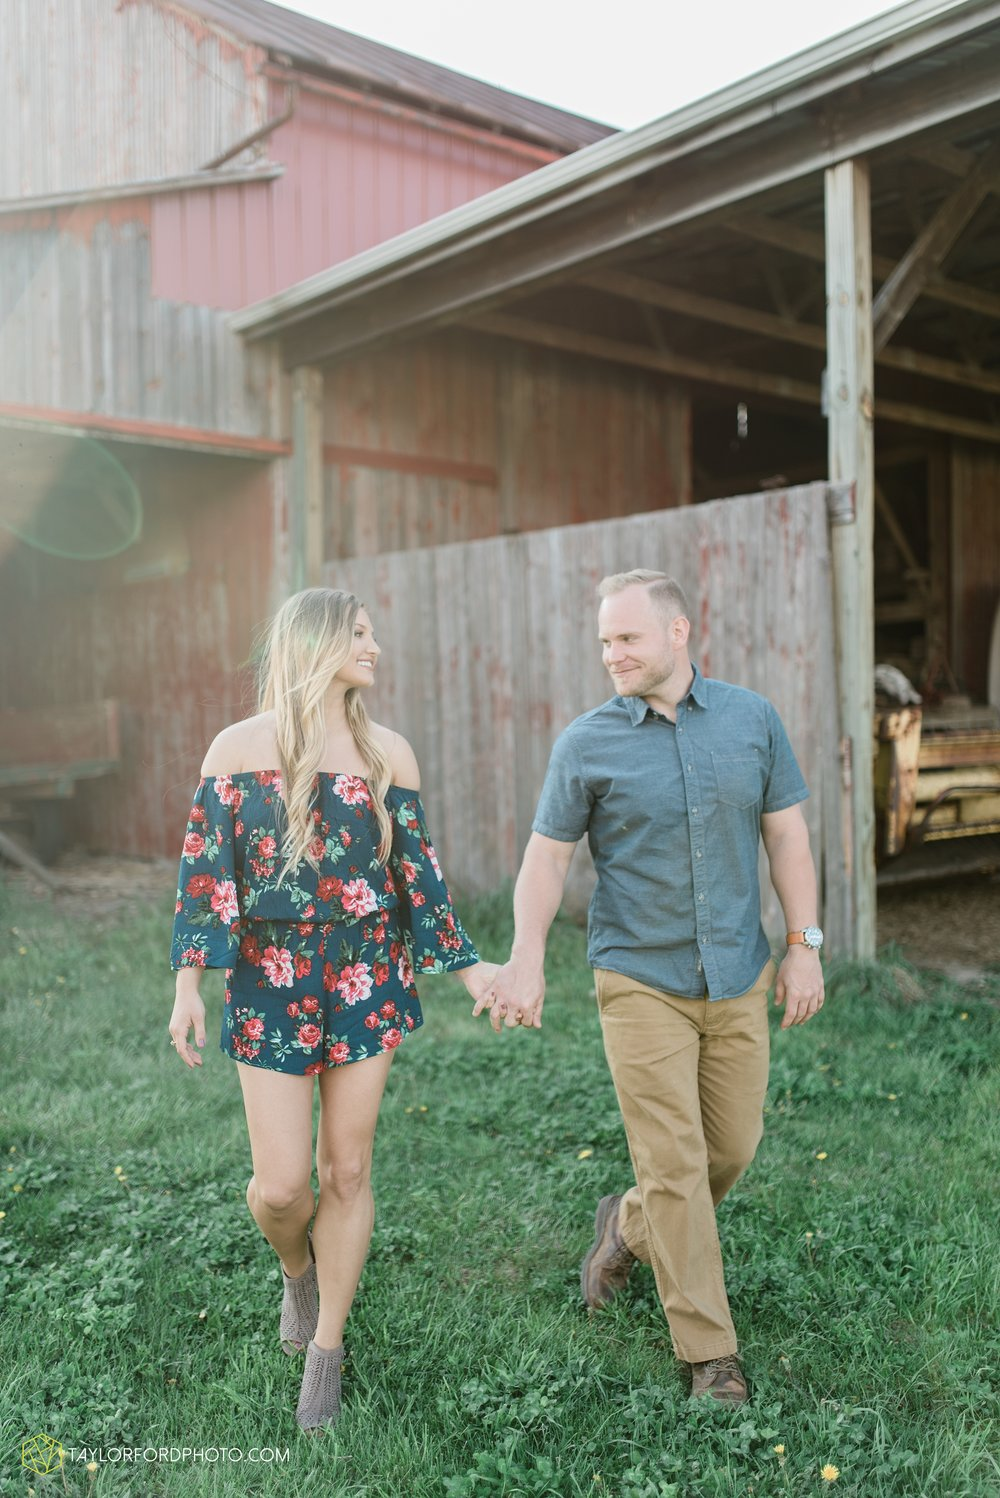 van-wert-ohio-spring-farm-engagement-photographer-photographer-Taylor-Ford-Photography_7098.jpg